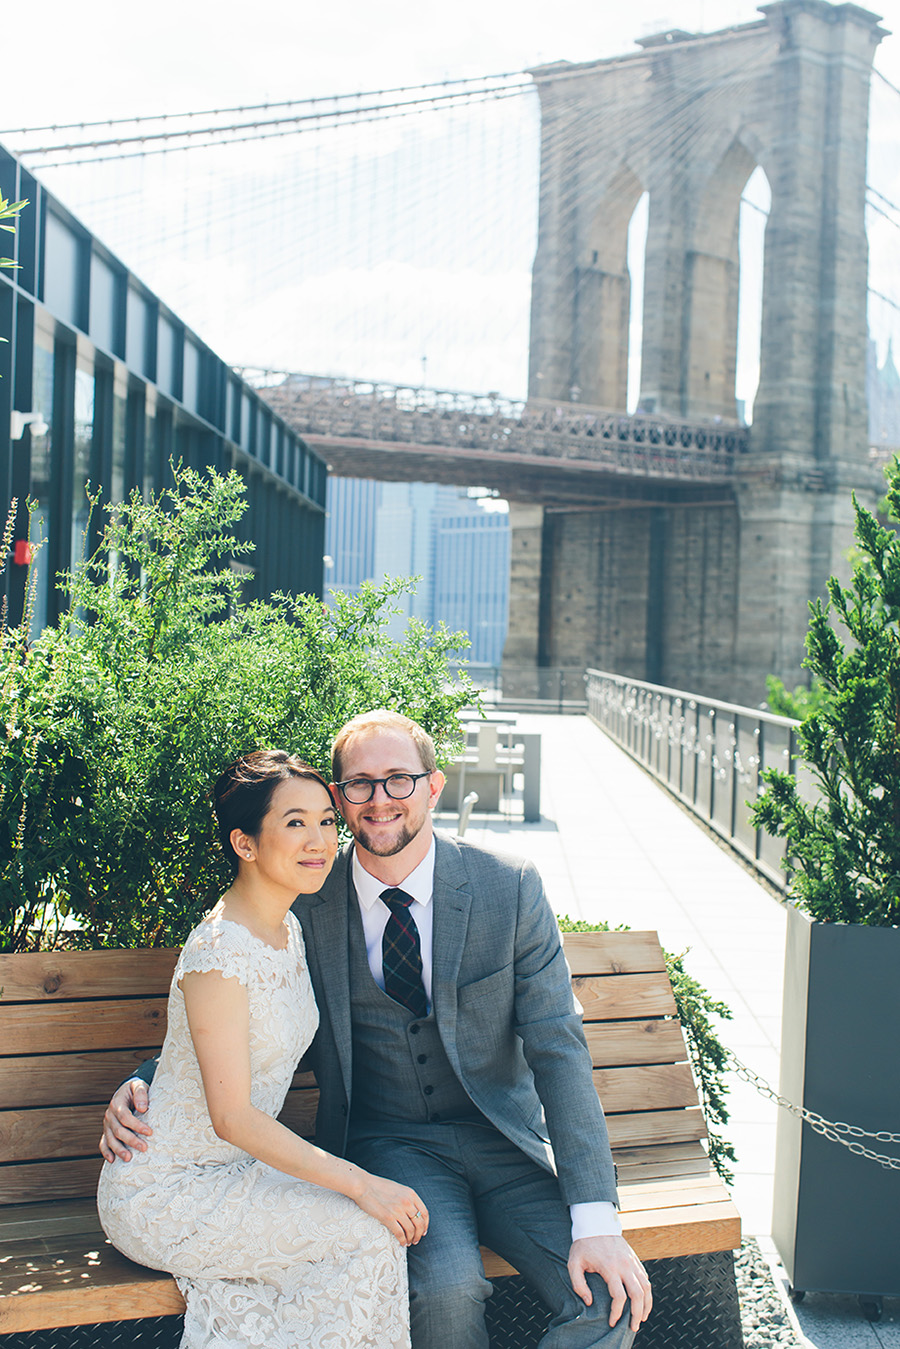 NEW-YORK-CITY-WEDDING-PHOTOGRAPHER-VINEGAR-HILL-HOUSE-INTIMATE-DUMBO-WEDDING-ELOPEMENT-MANHATTAN-BROOKLYN-WEDDING-PHOTOGRAPHY-0008.jpg